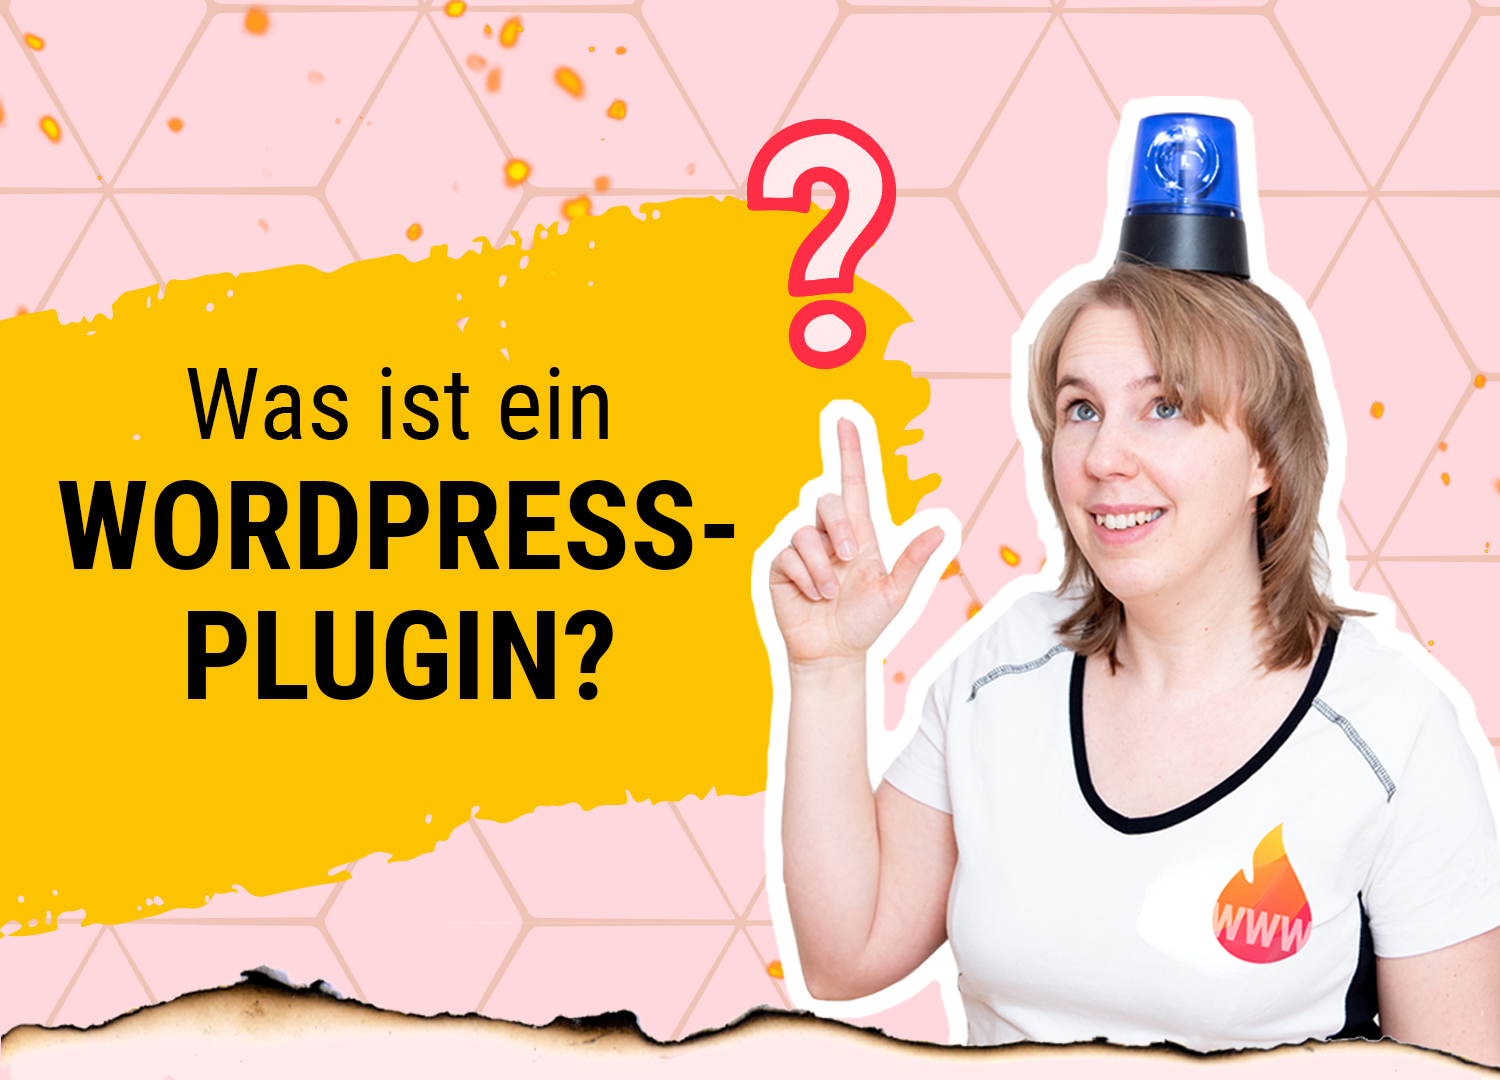 Was ist ein WordPress-Plugin?